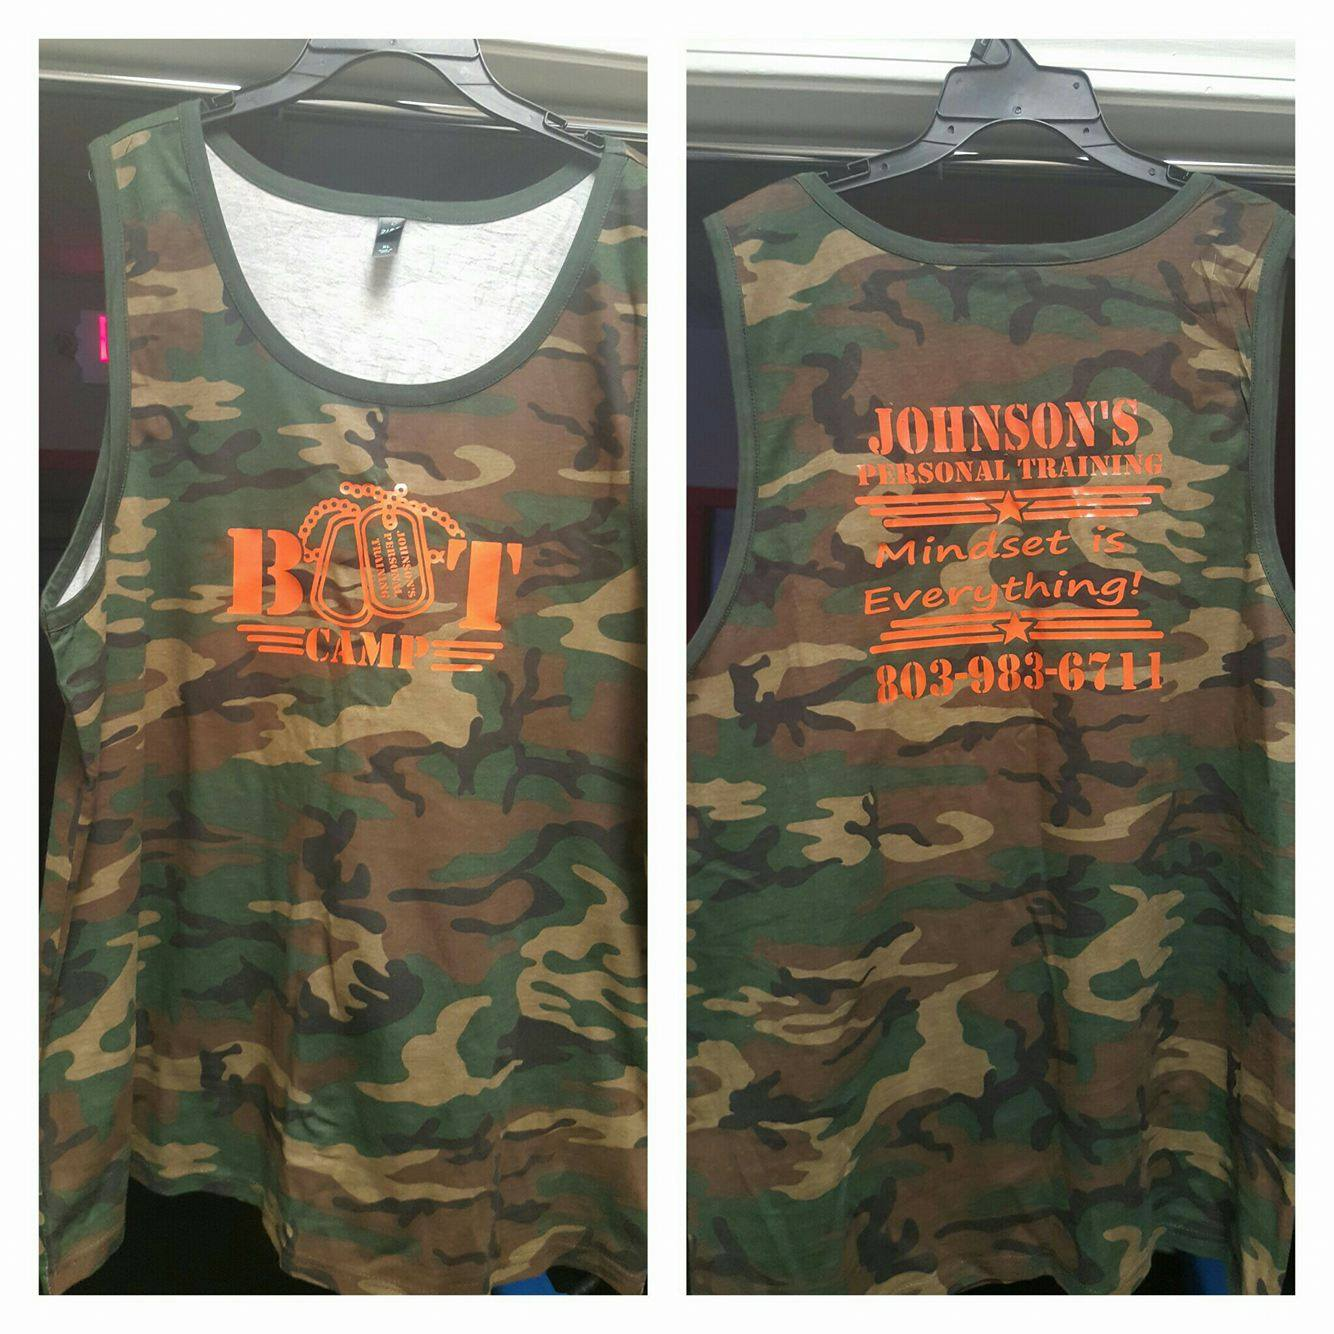 Bootcamp Camo Tank Top